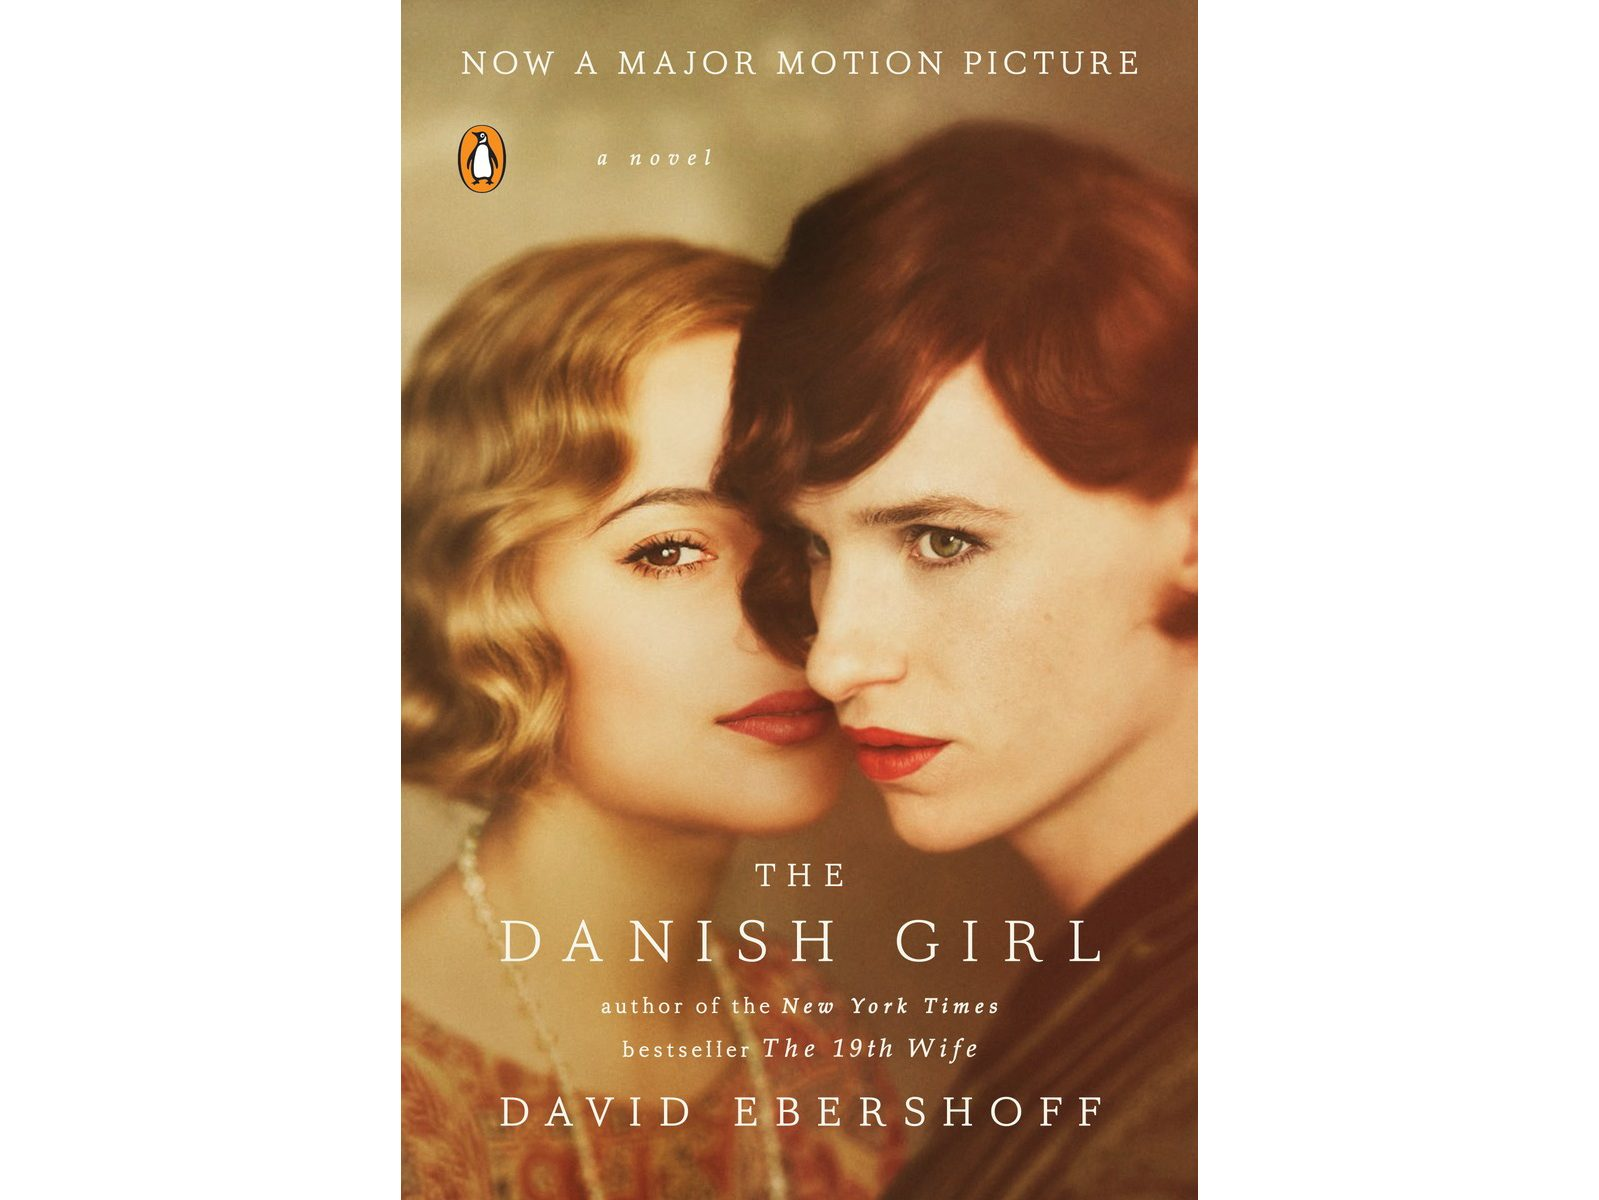 6. The Danish Girl by David Ebershoff